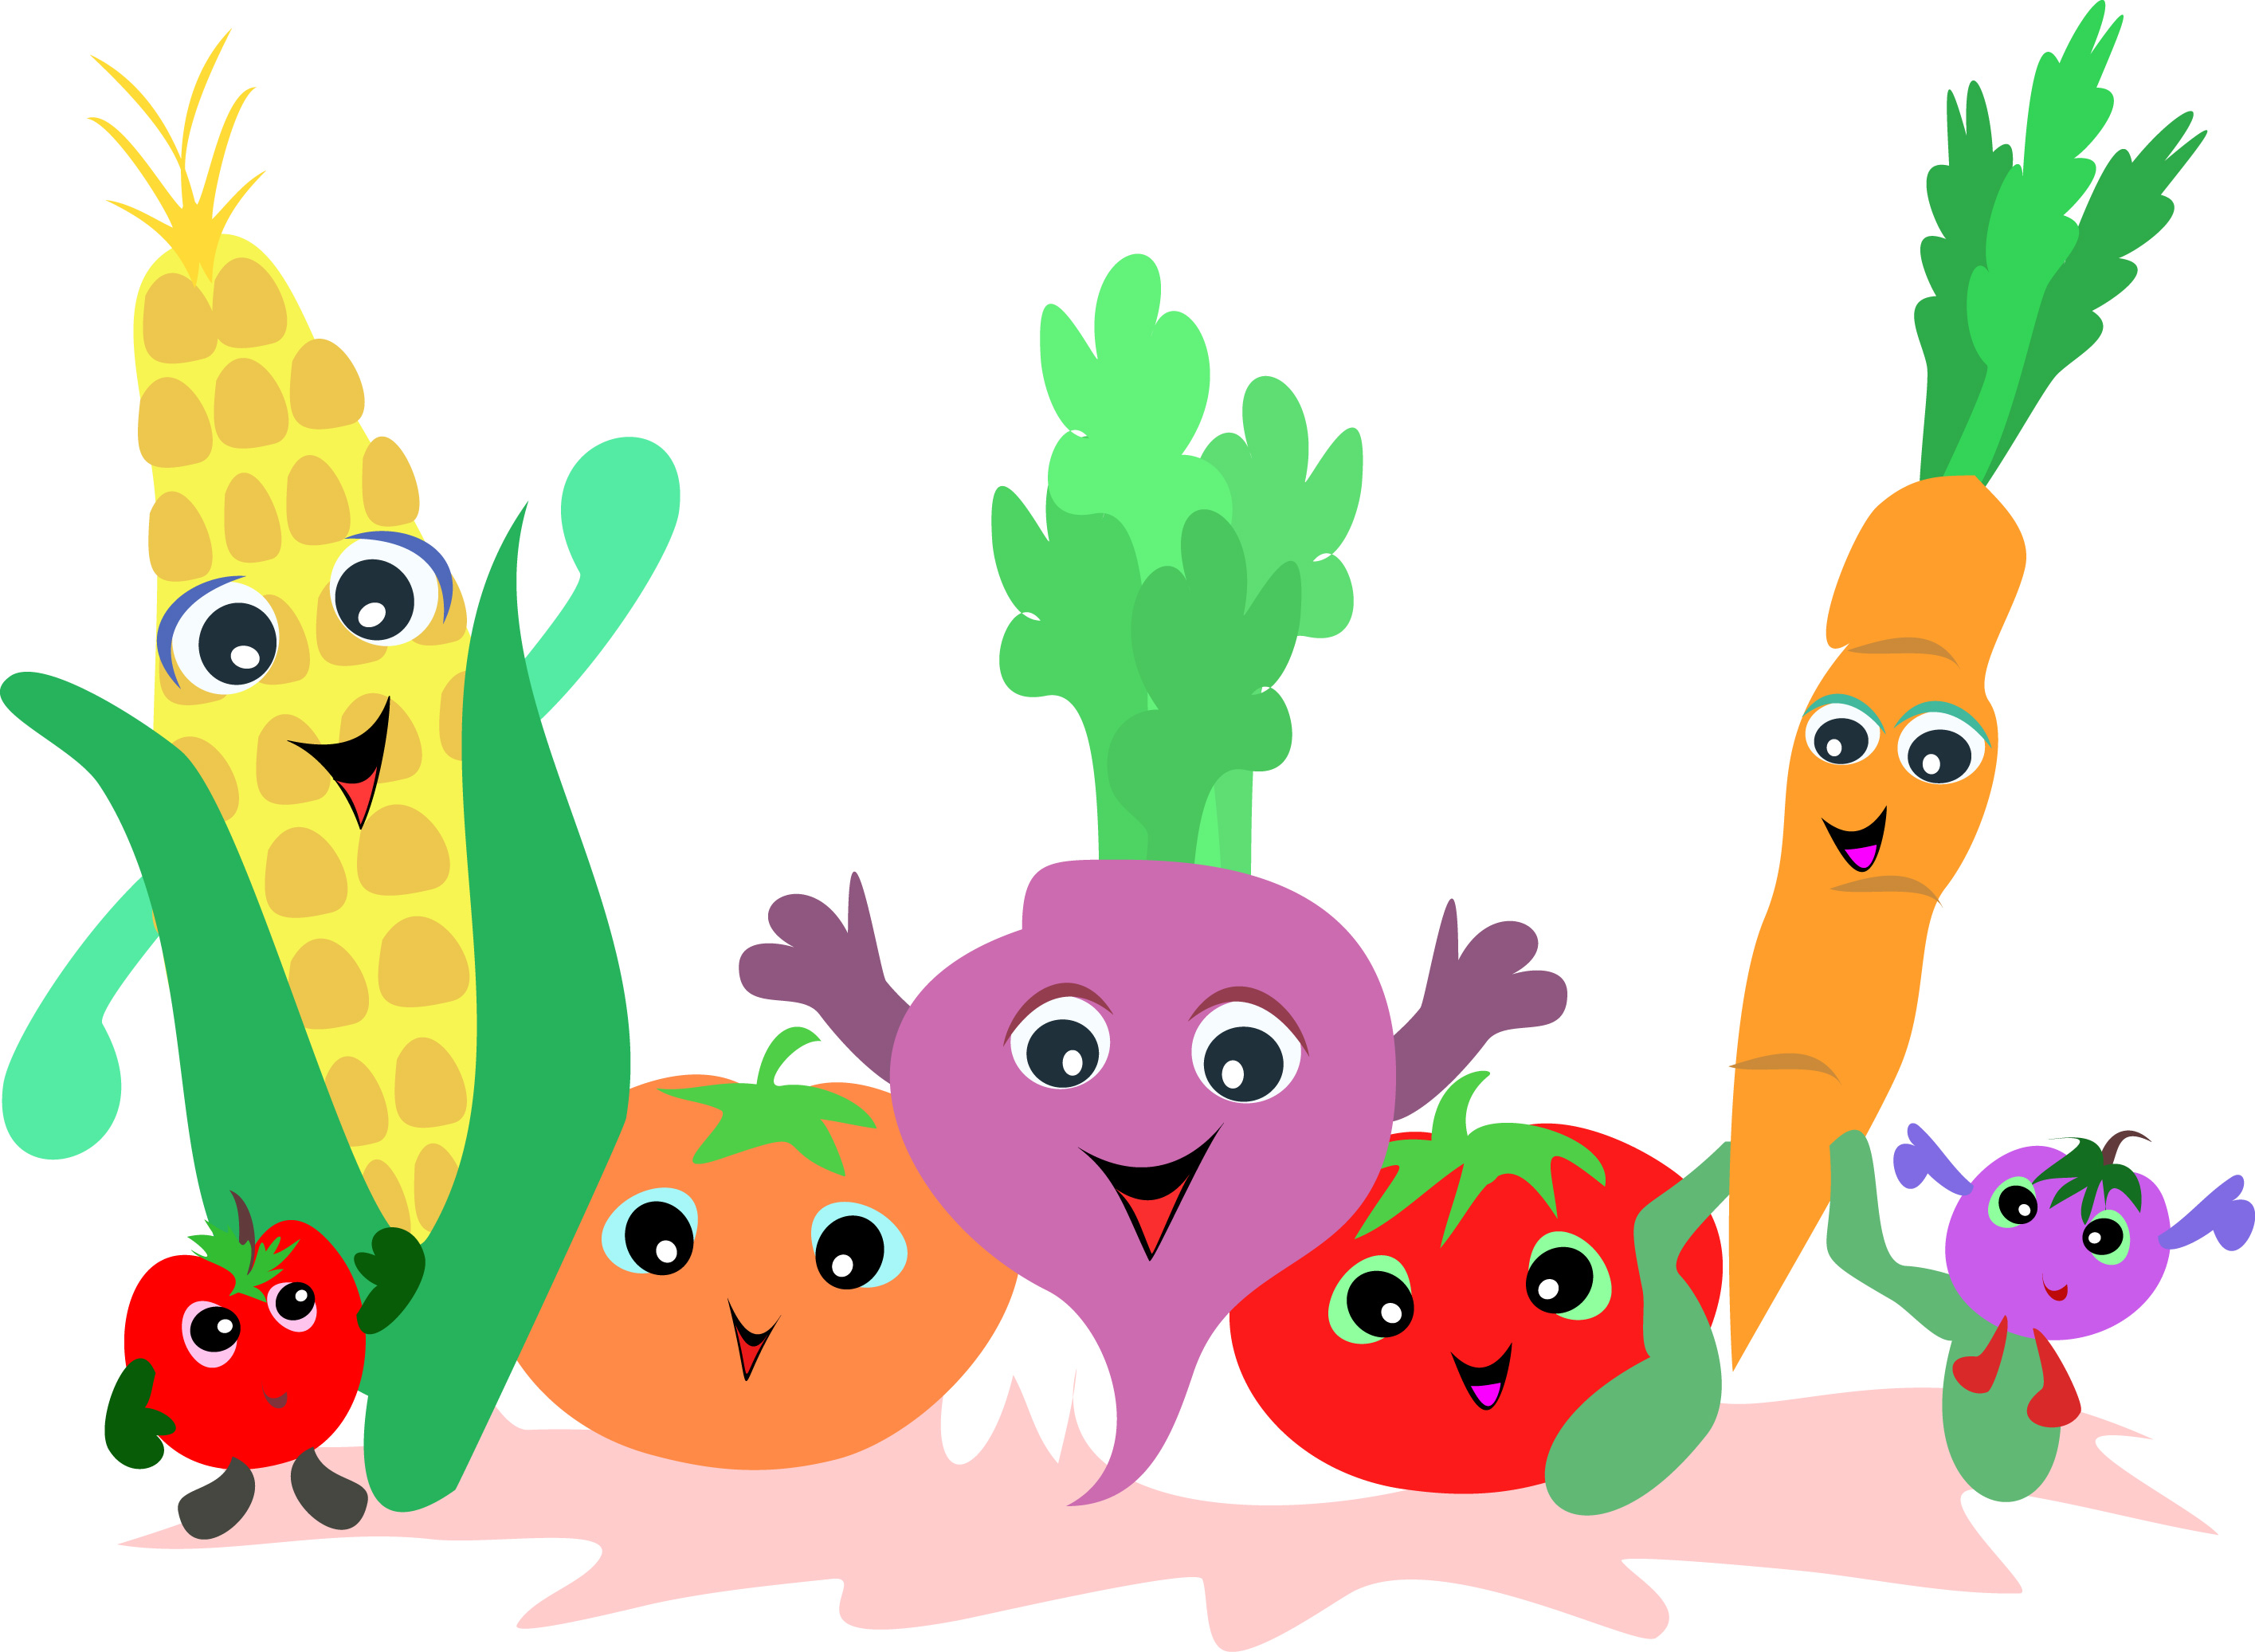 scientists discover how many portions of fruits and veggies per